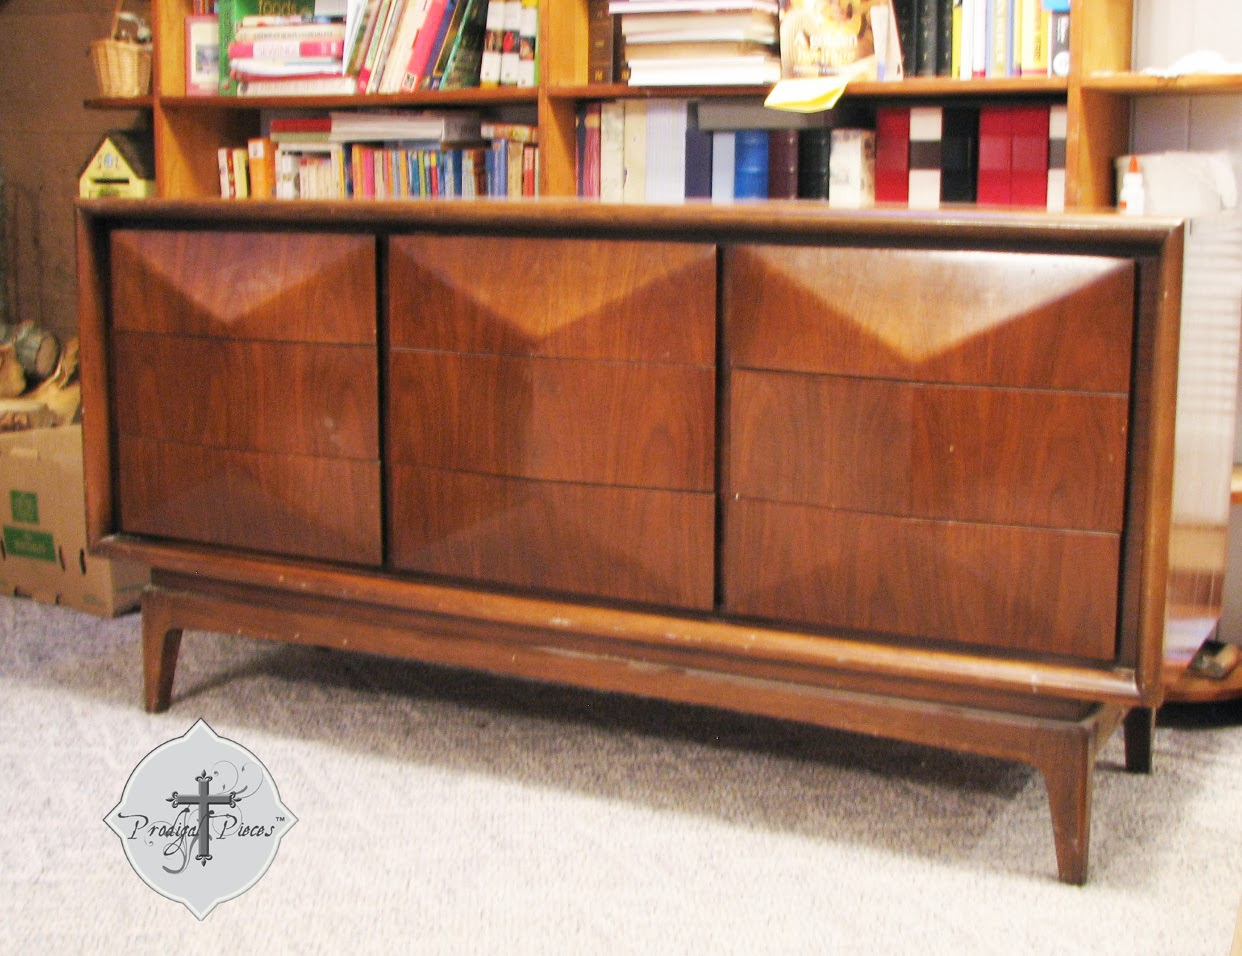 Mid Century Dresser curbed by many books